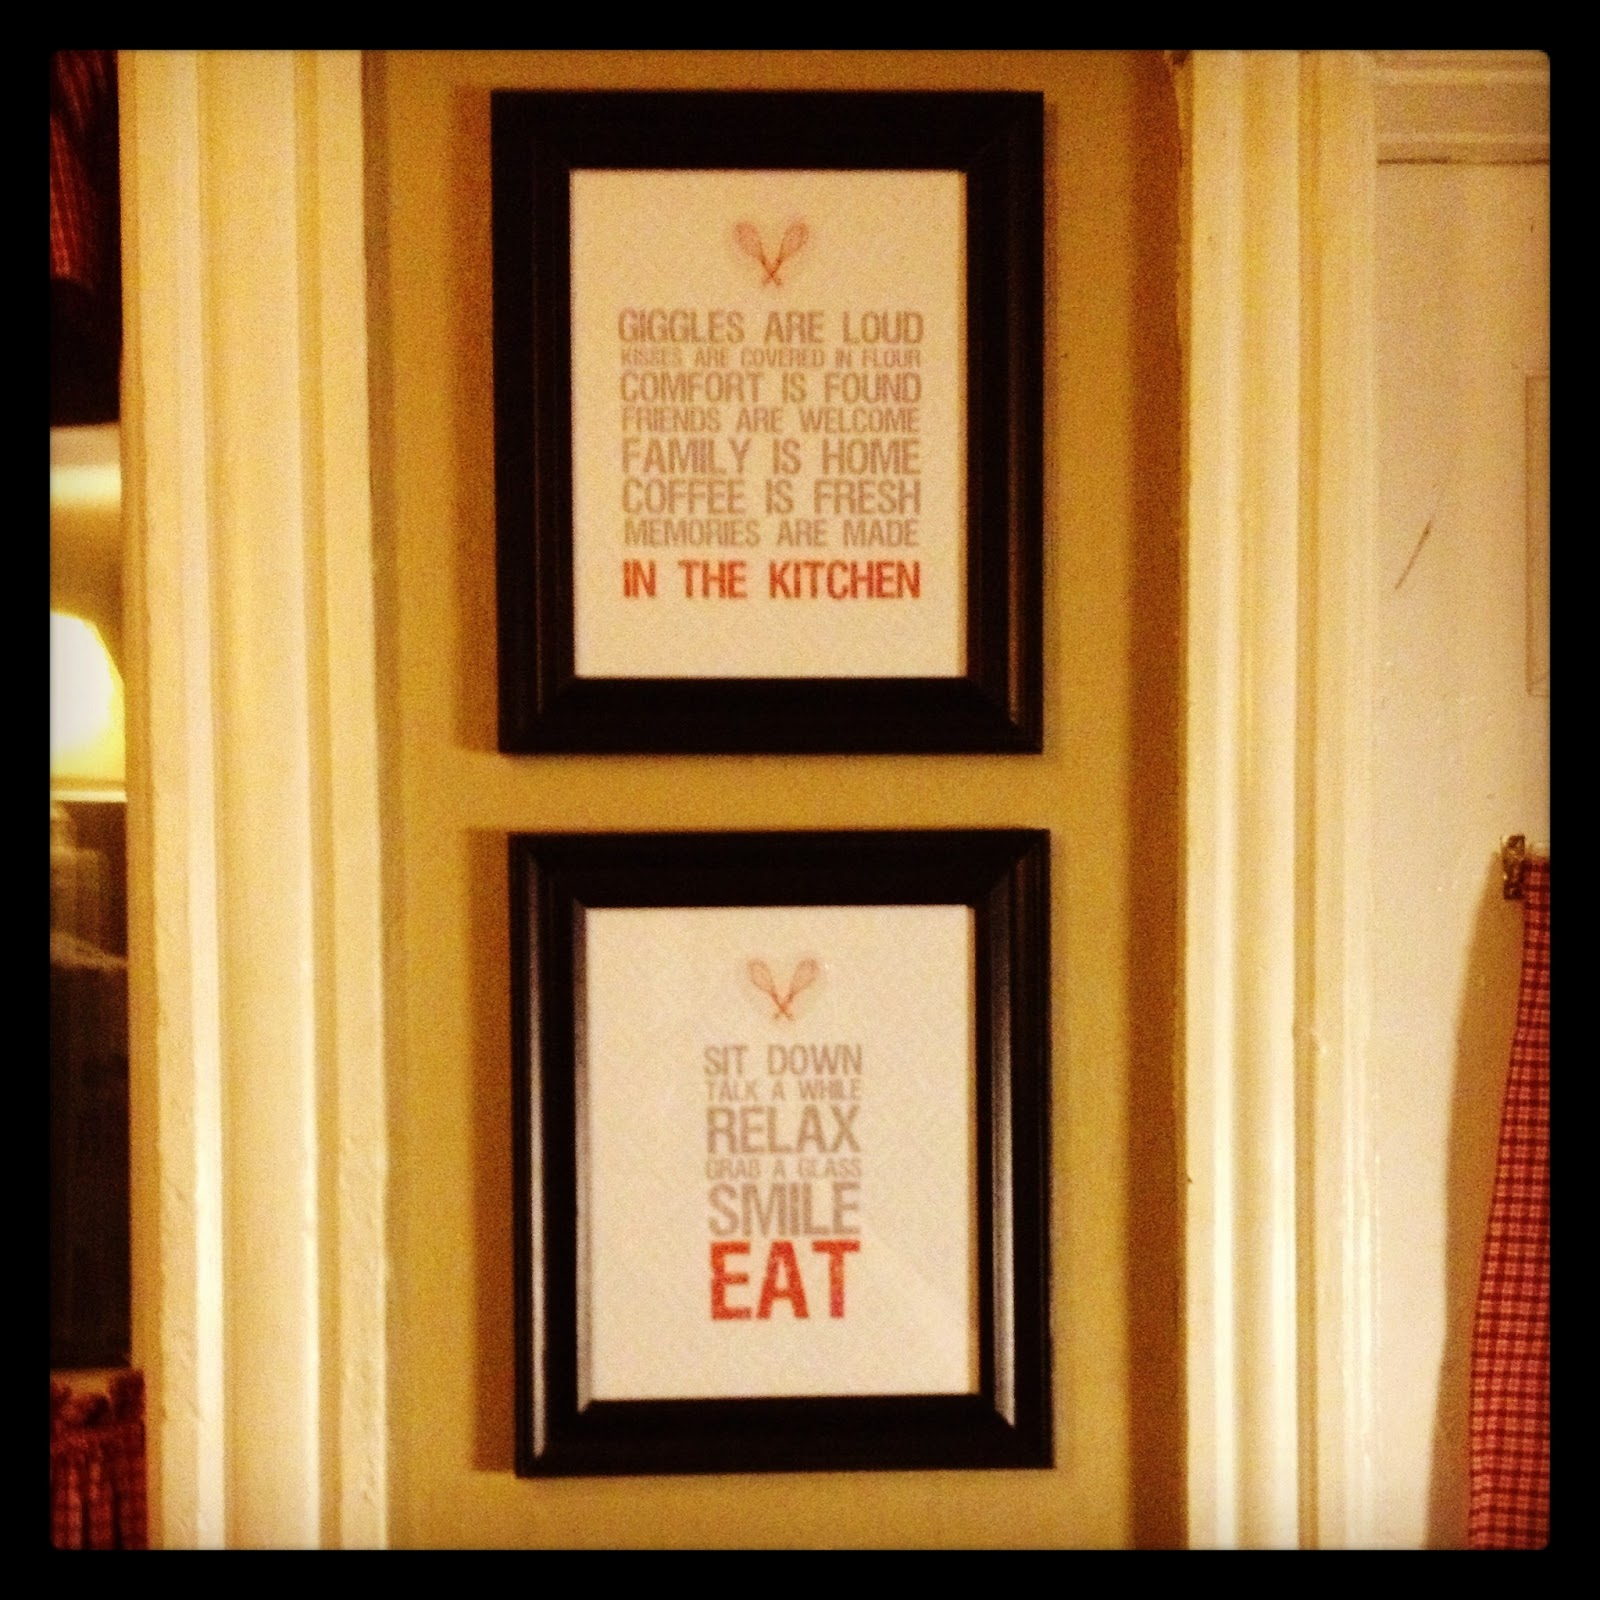 Wall Decorations Pinterest: Two Steps Forward And I'm Not Looking Back: Kitchen Wall